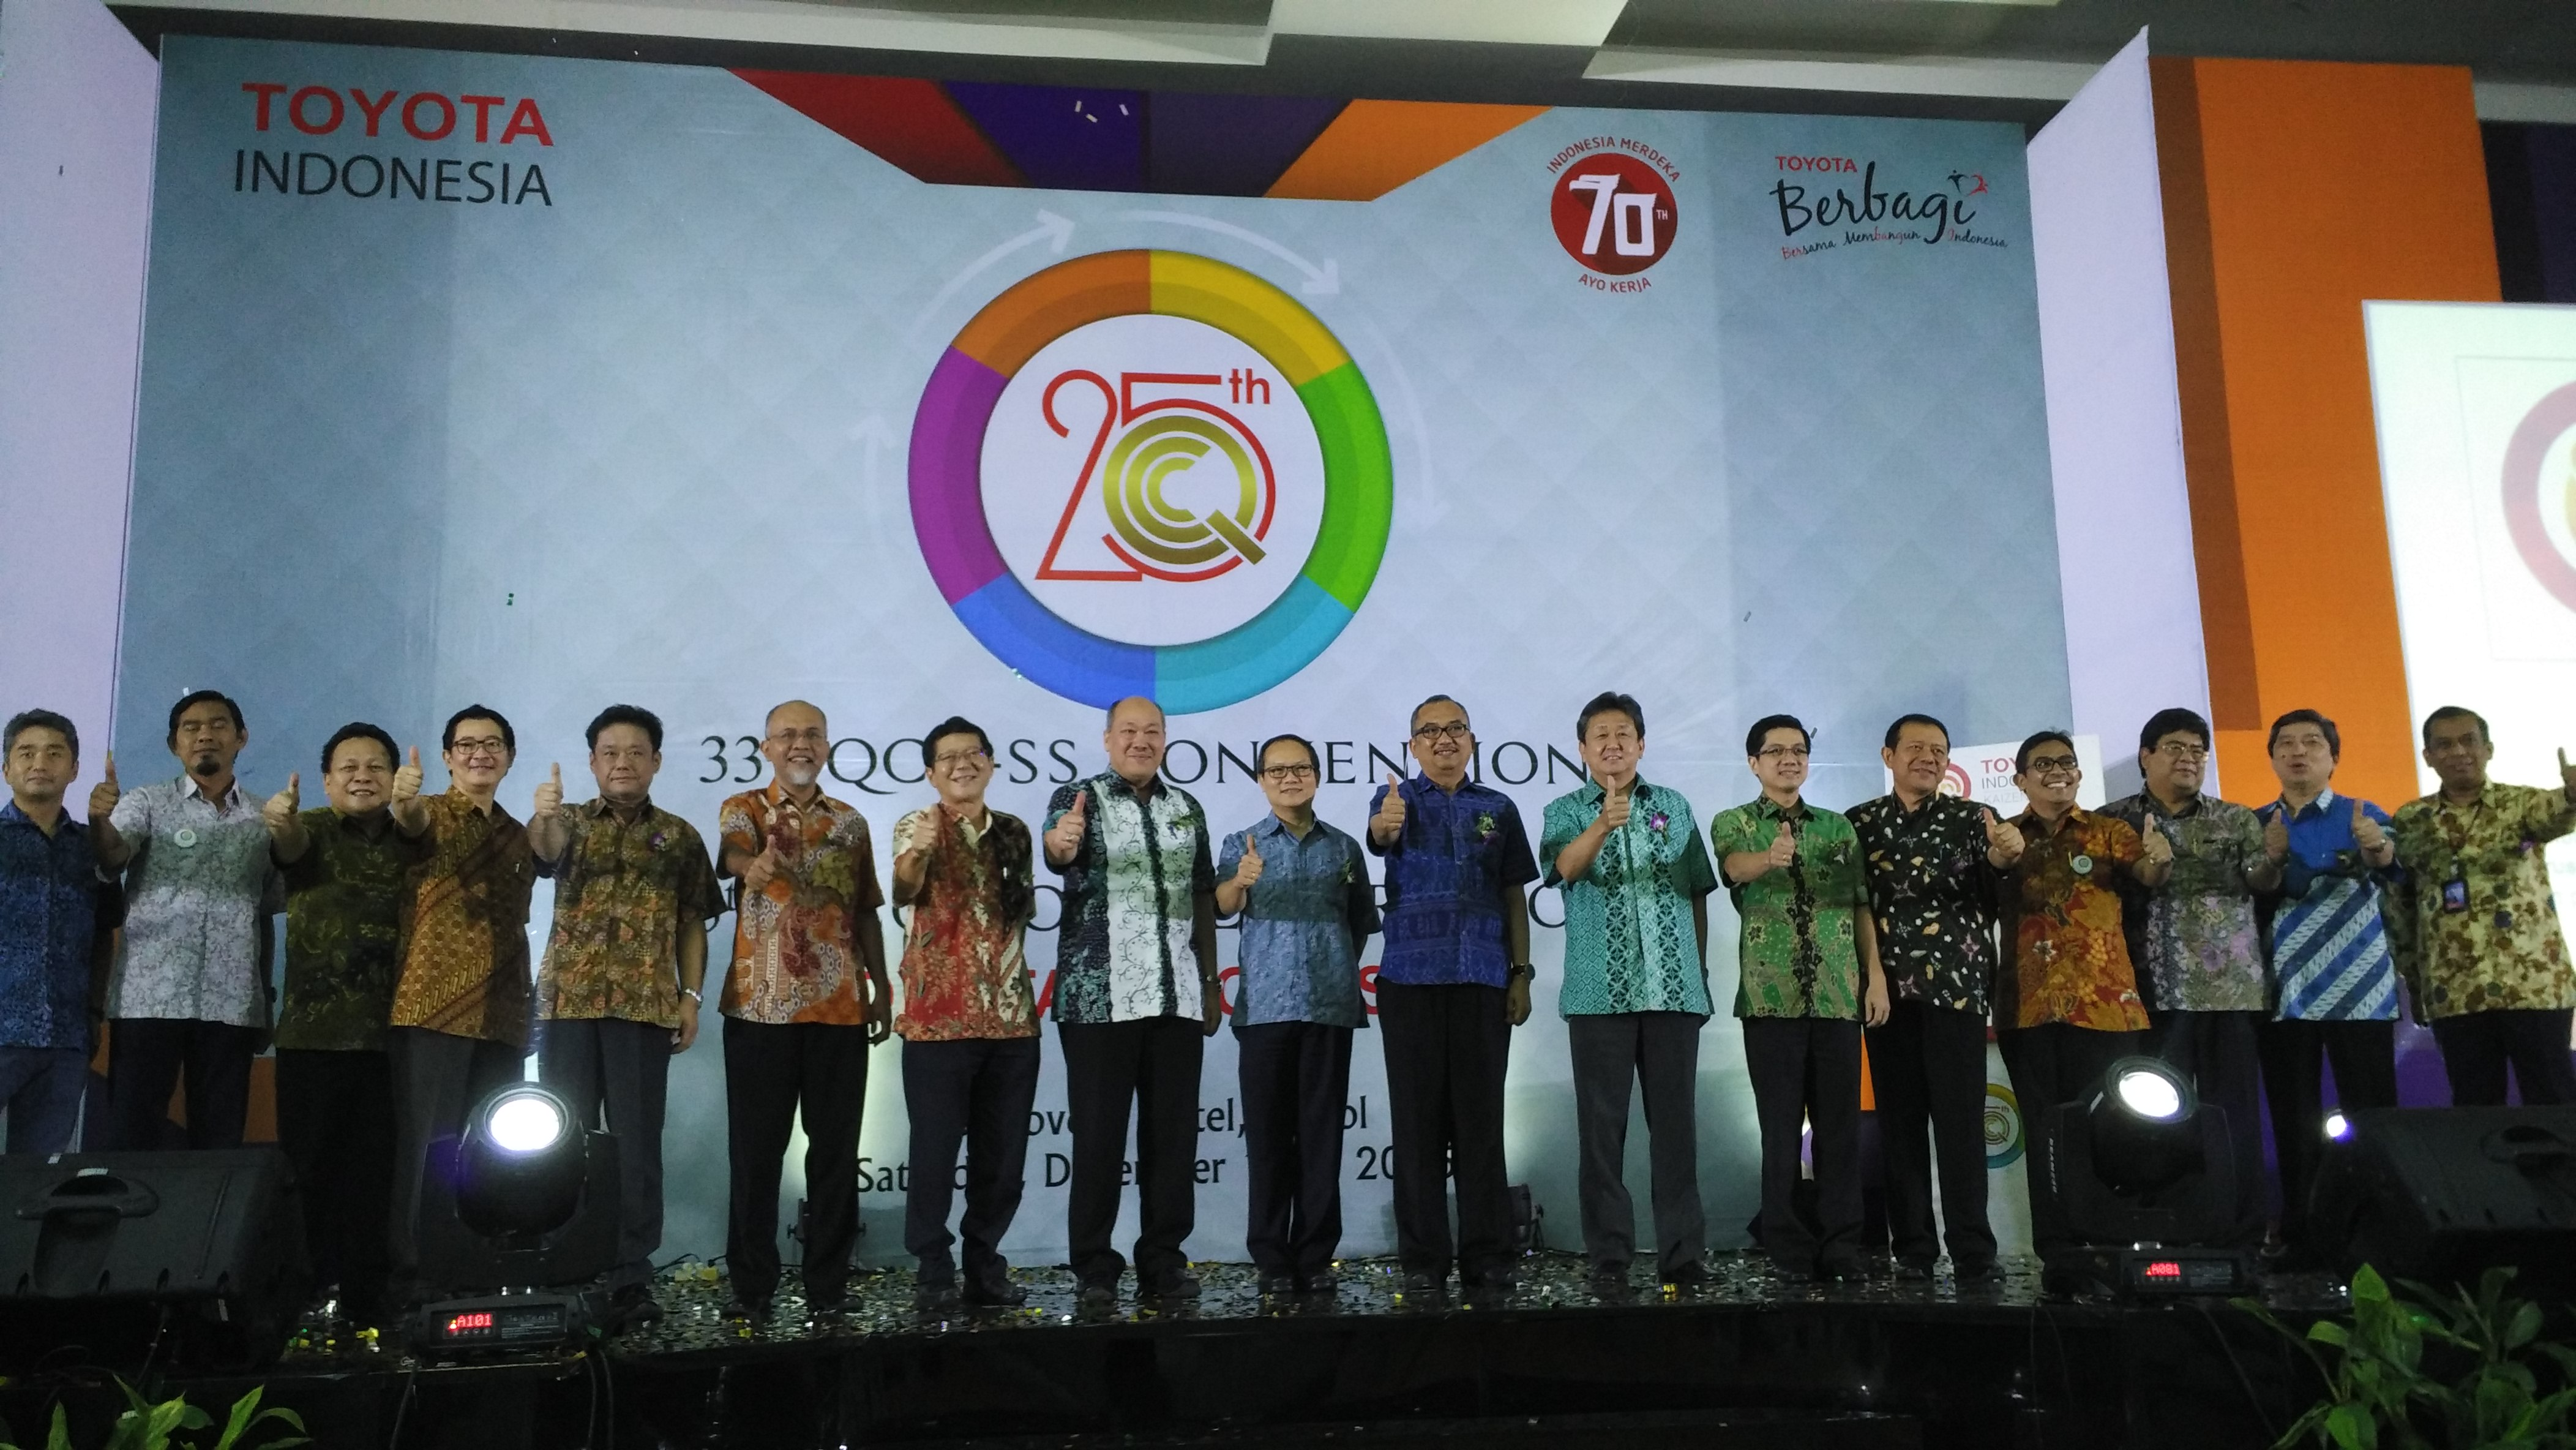 25 Years of The Quality Control Circle Convention